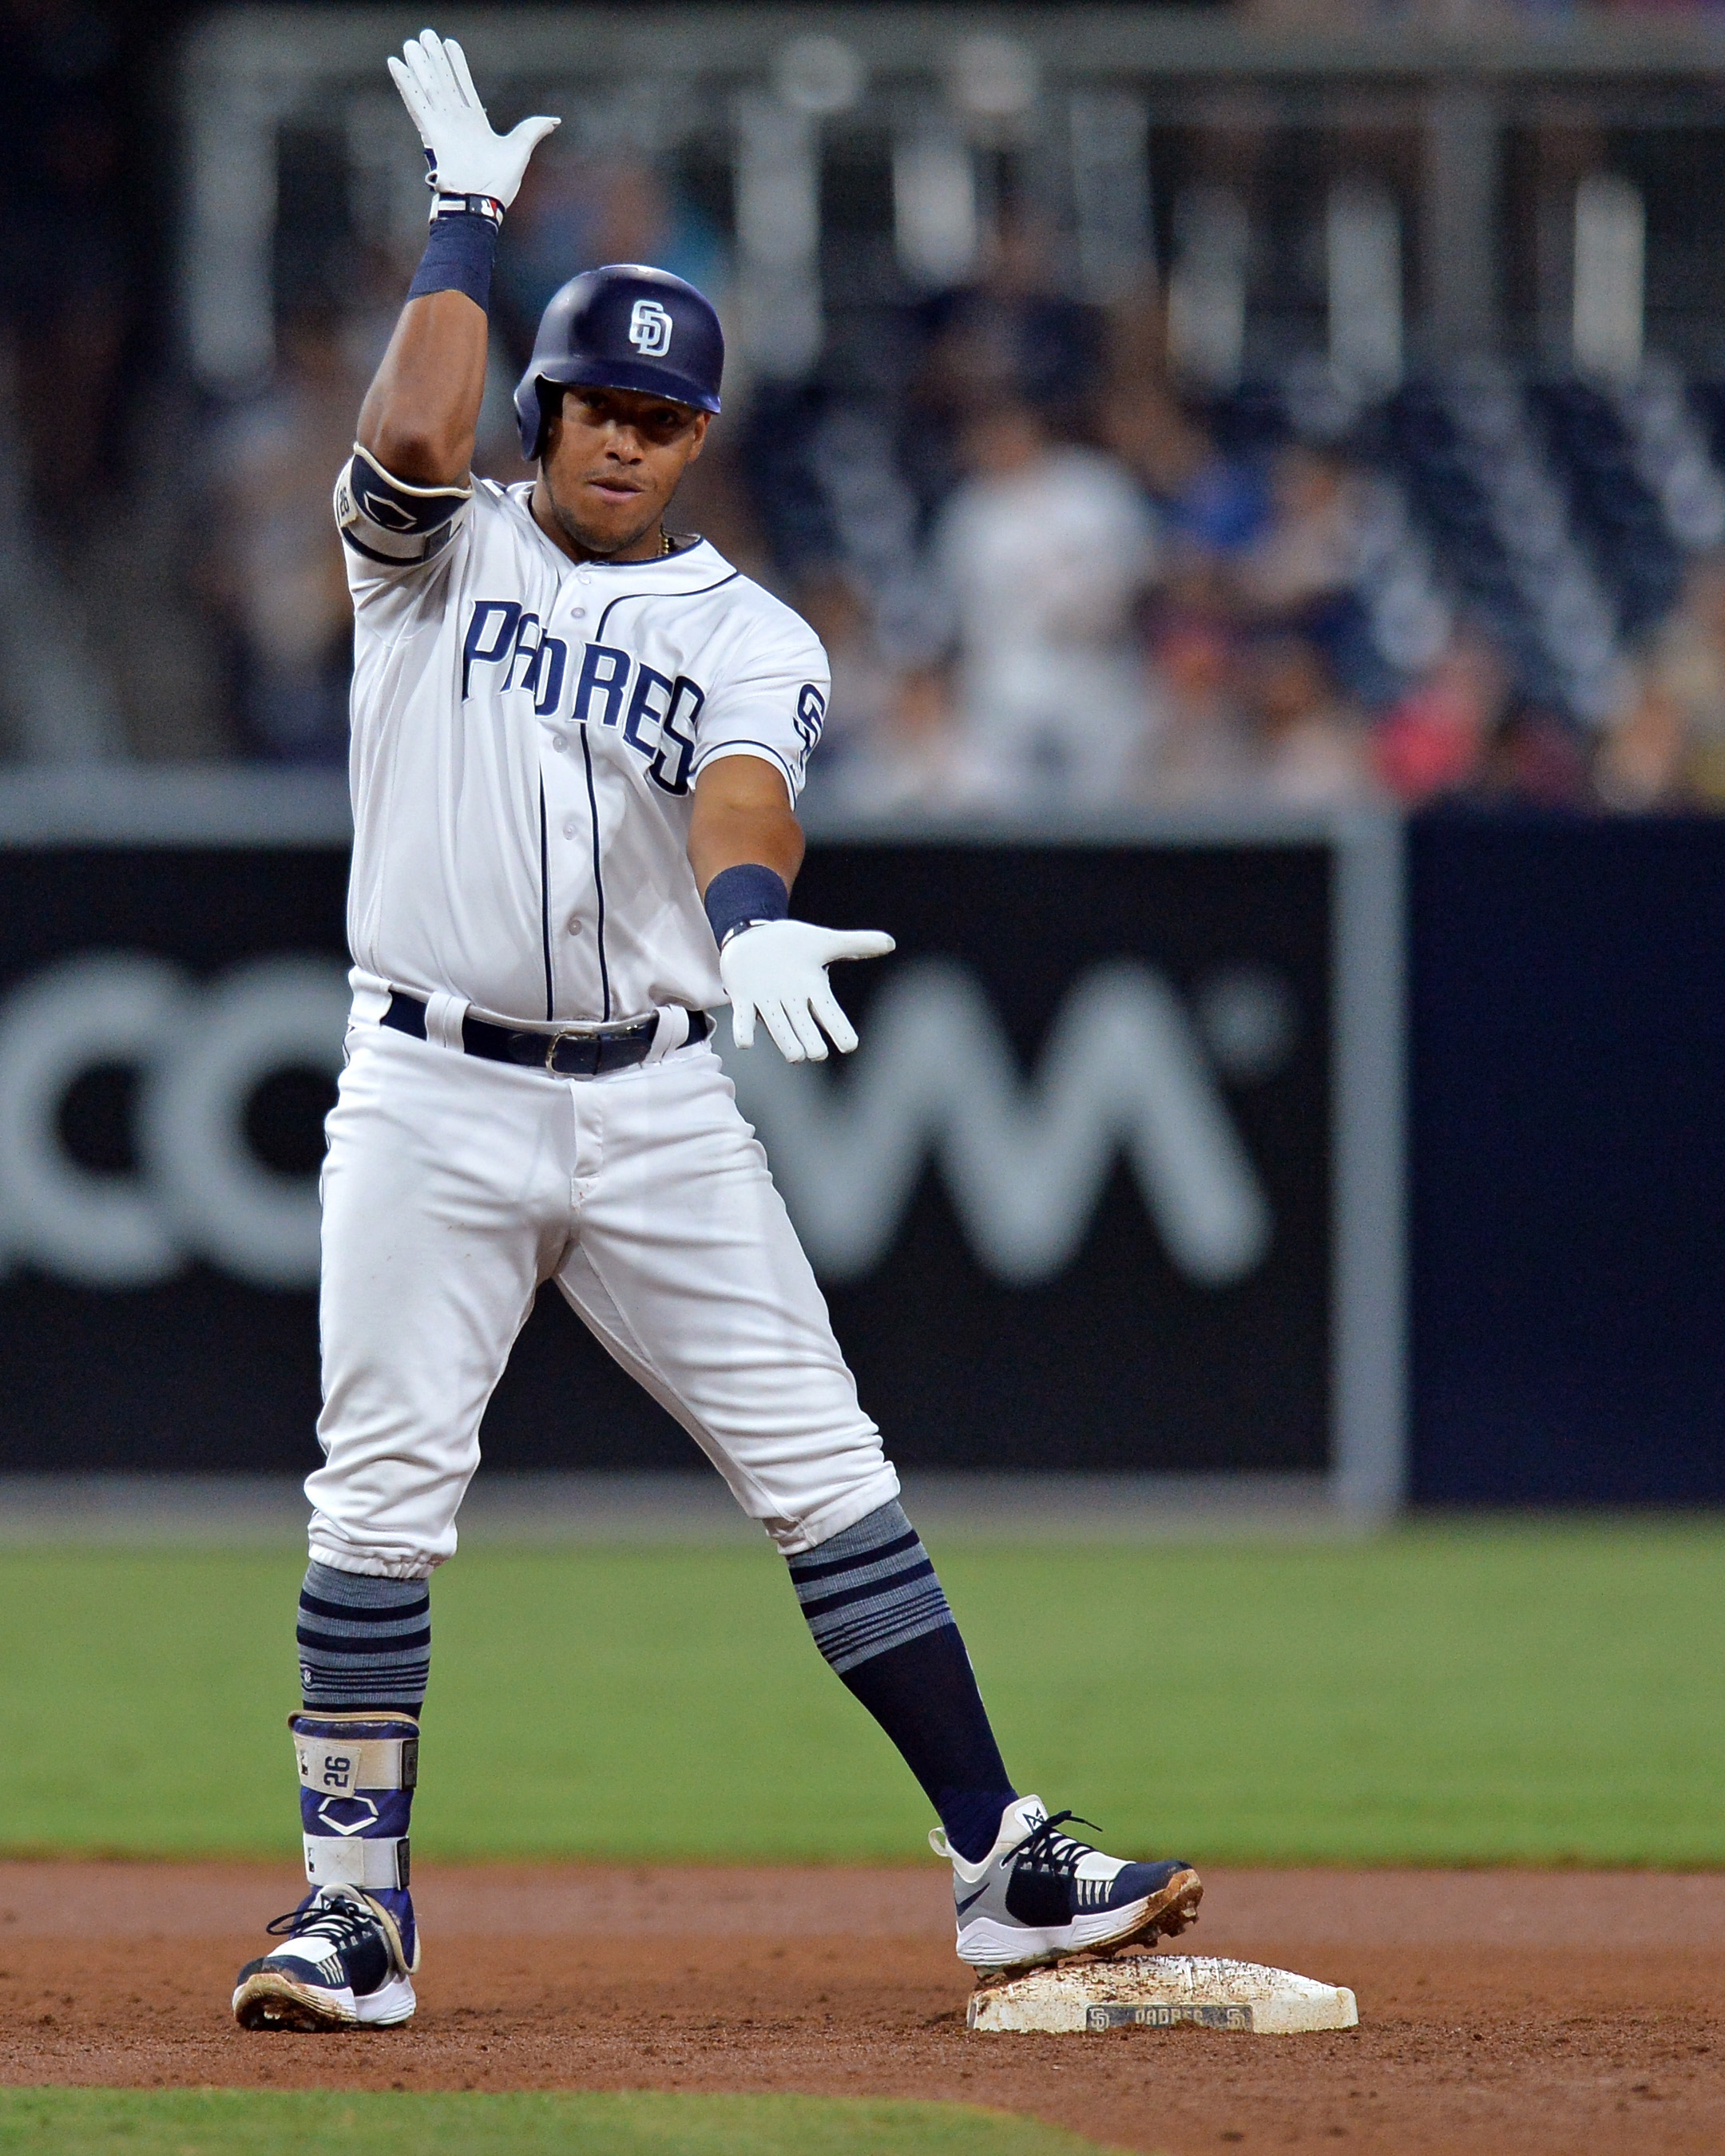 b13a4902281 The 30-year-old Solarte is the second infielder the Blue Jays have landed  via trade this winter